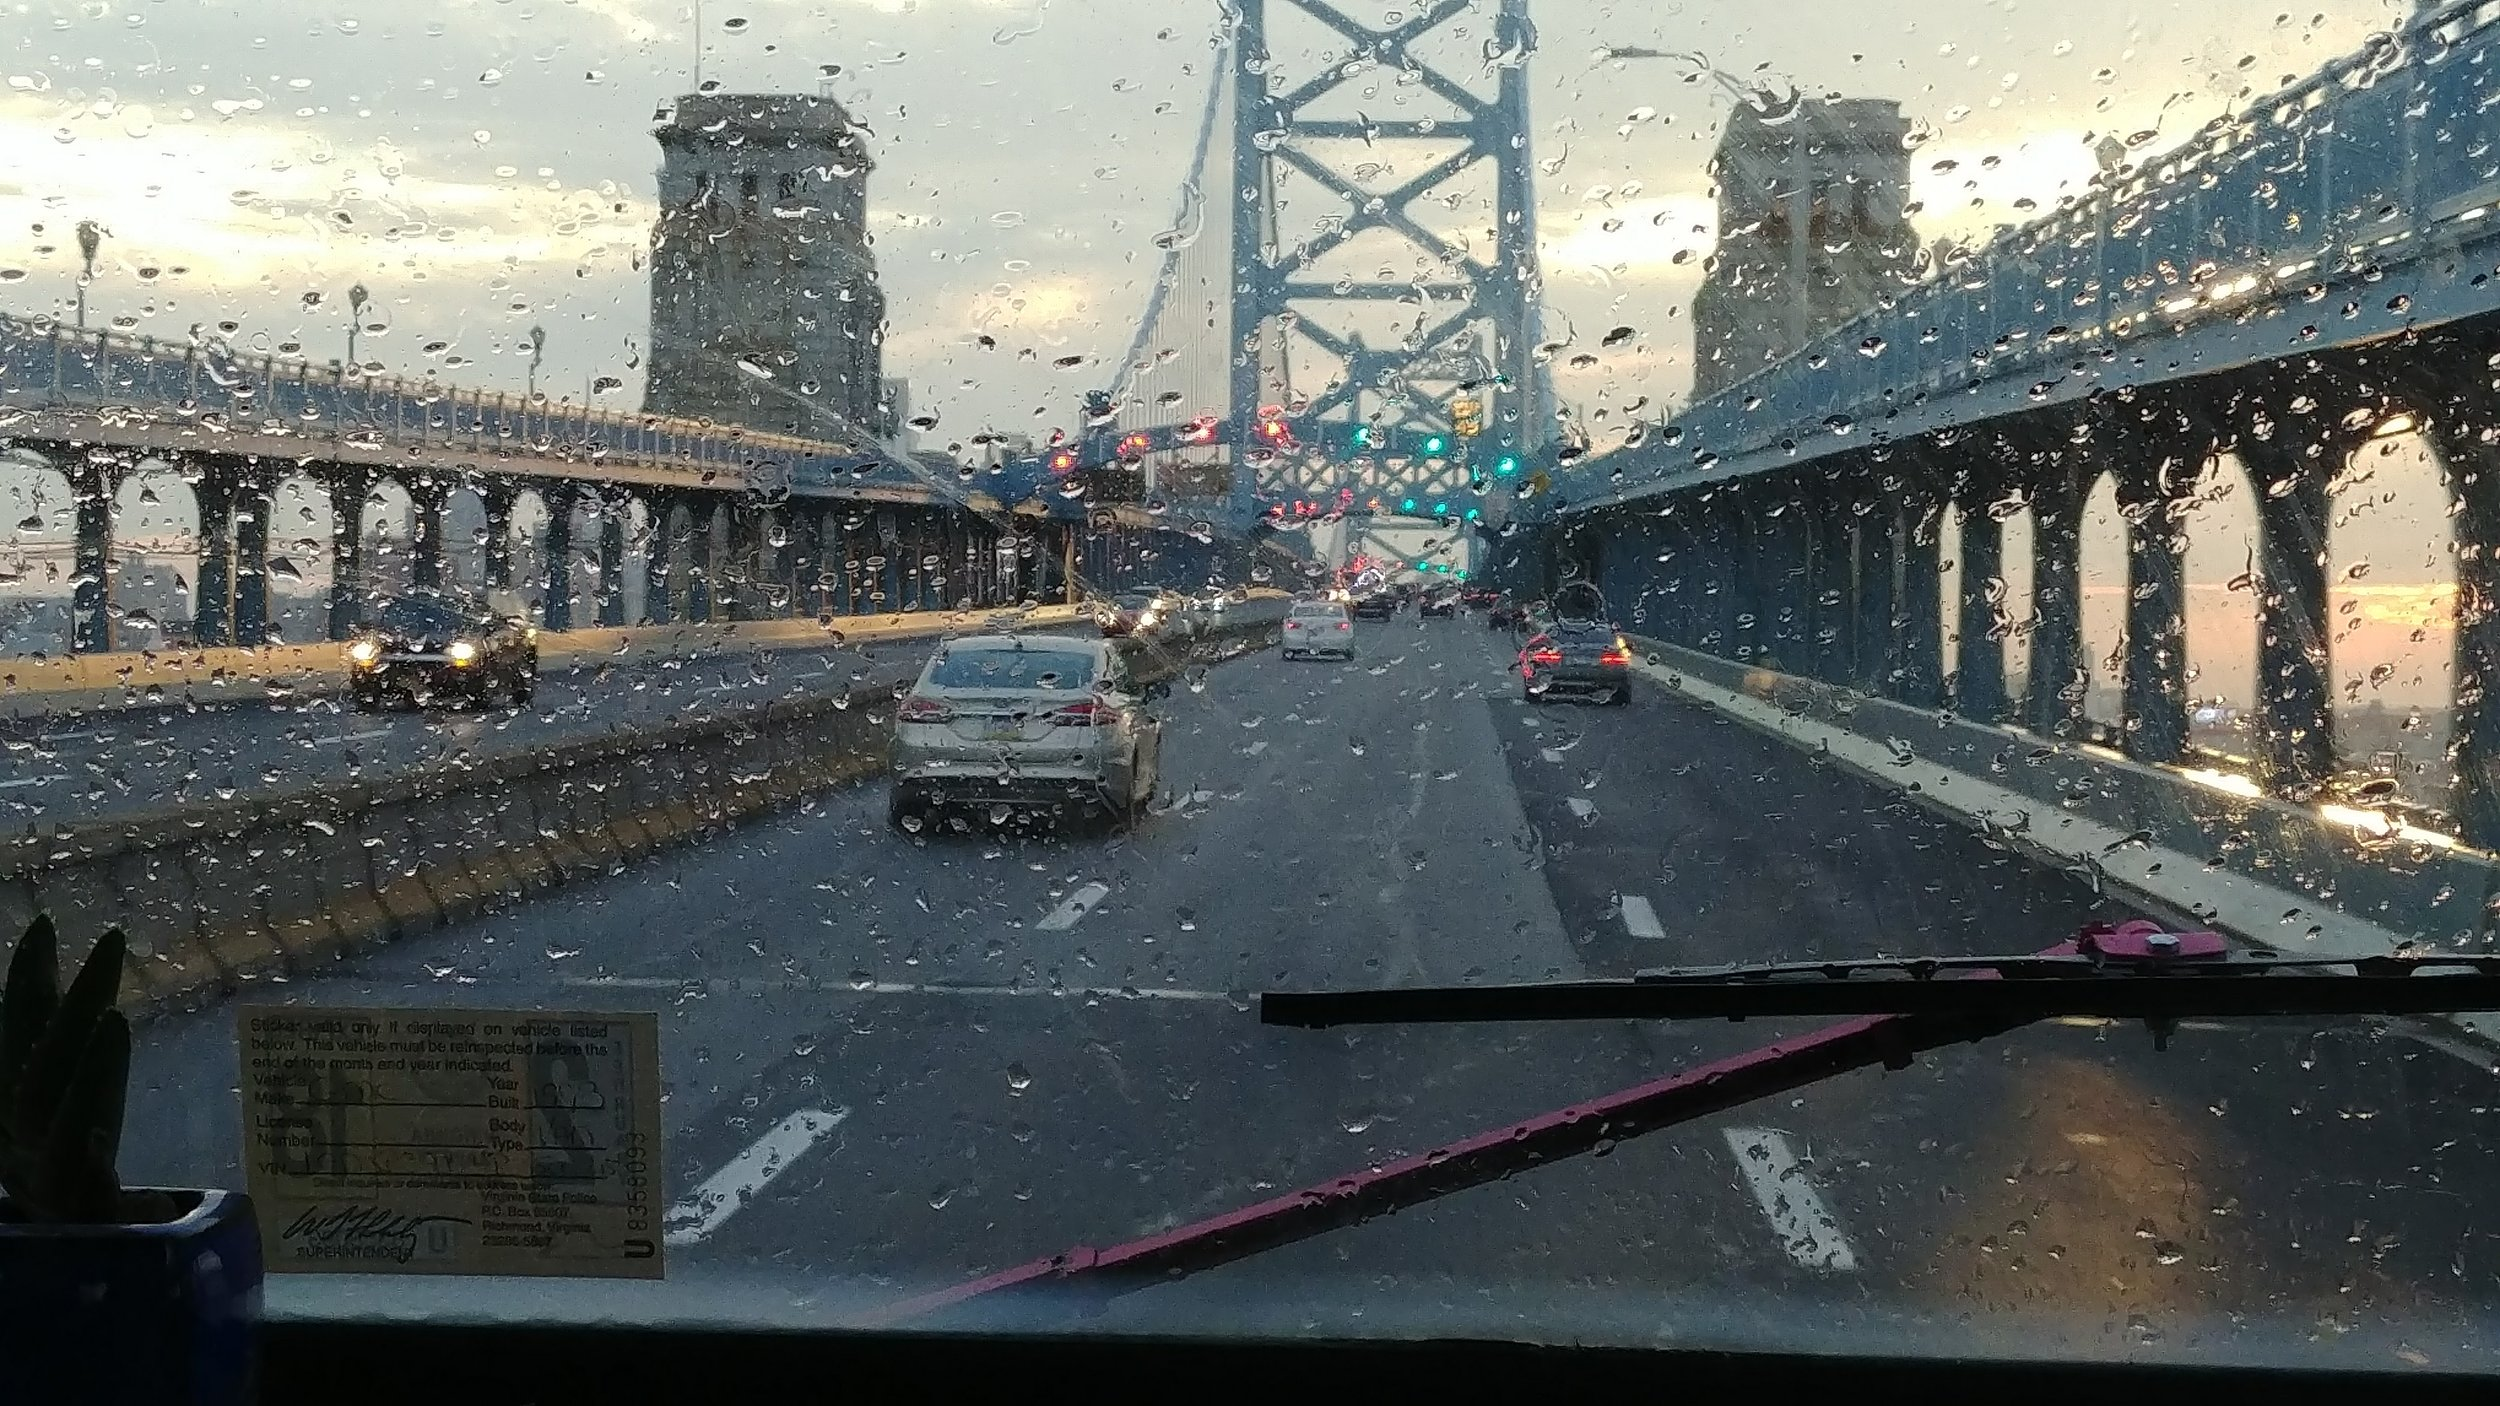 A wet arrival in Philly